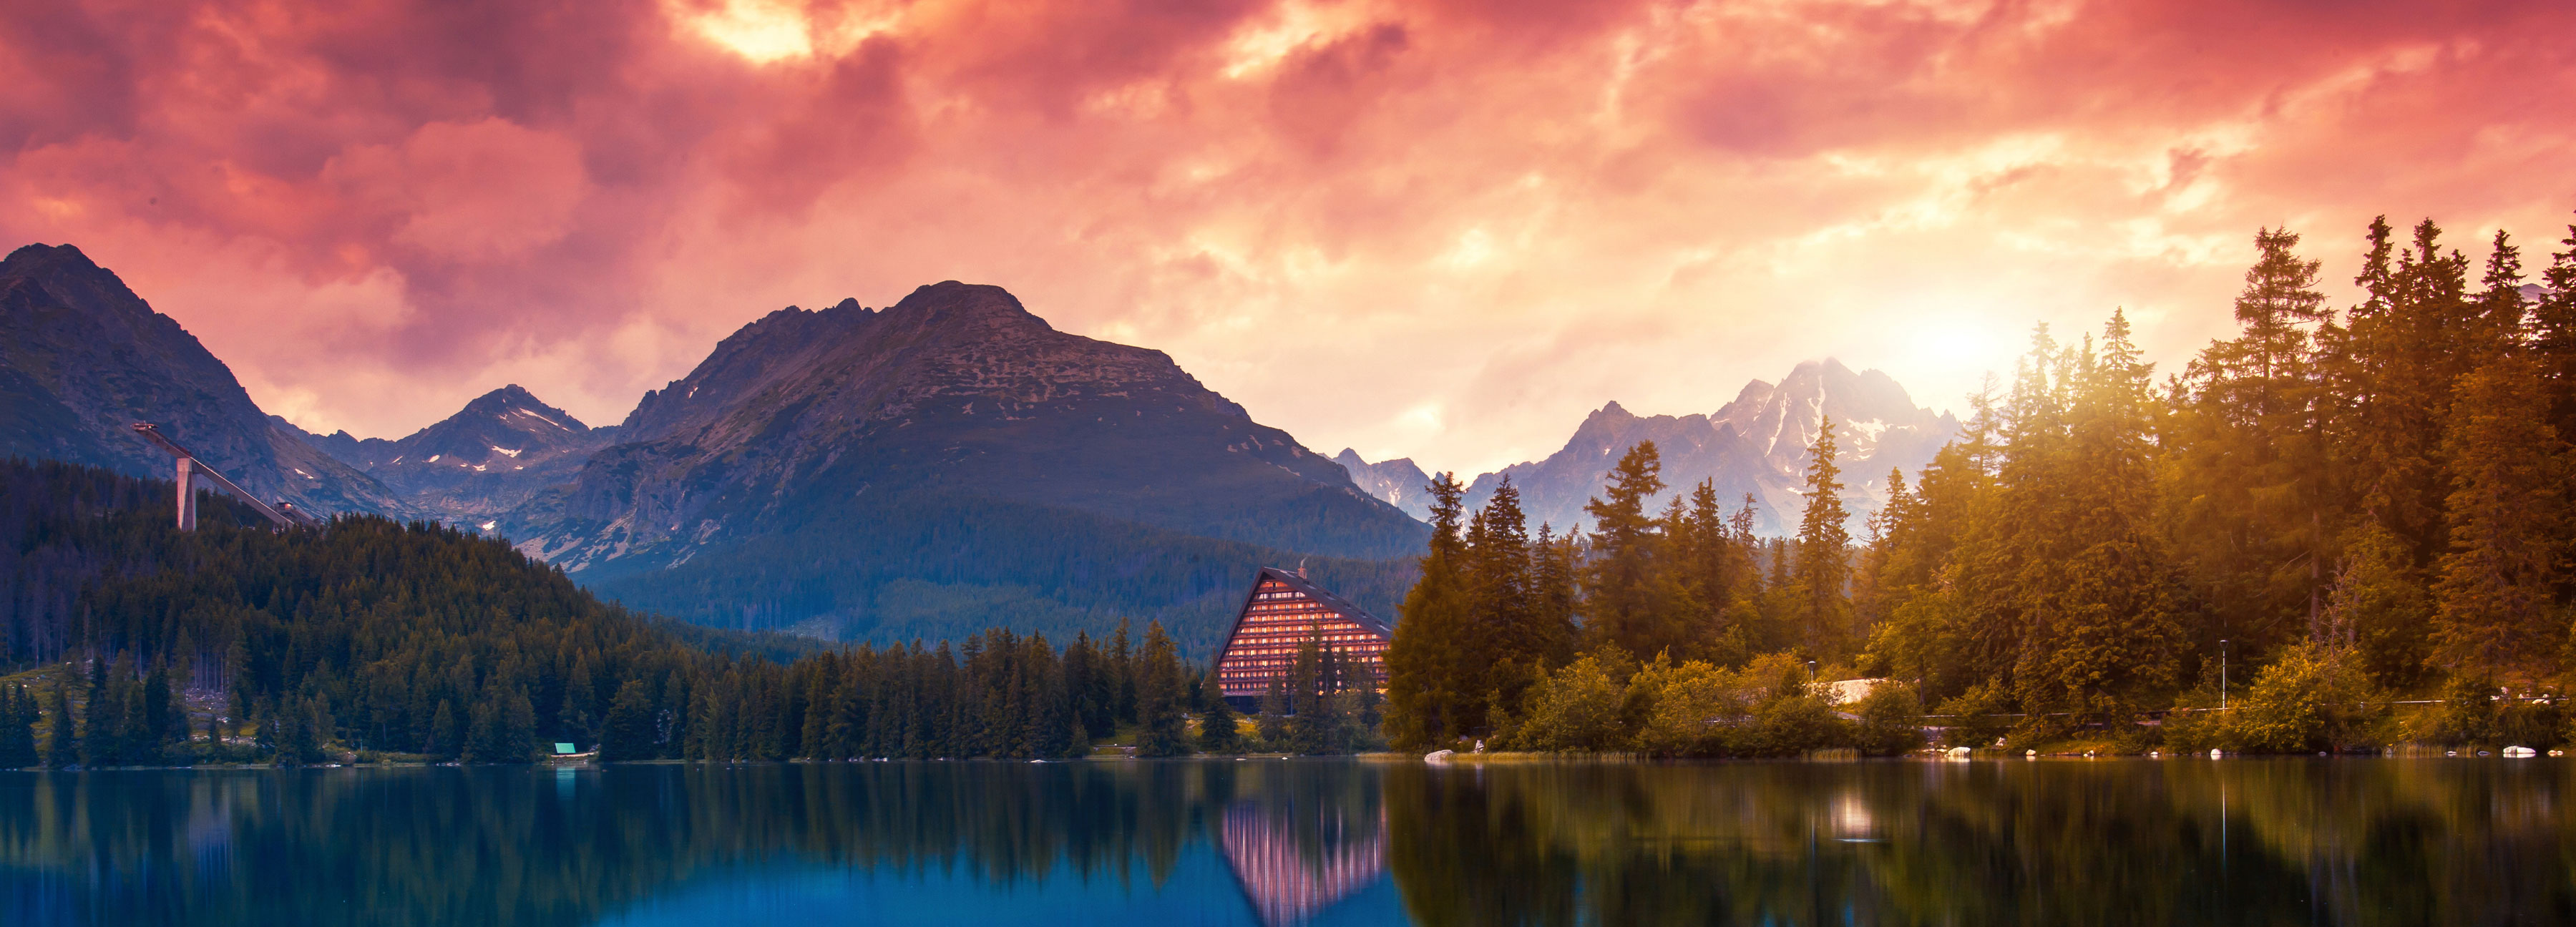 Sunset over a mountain resort and lake